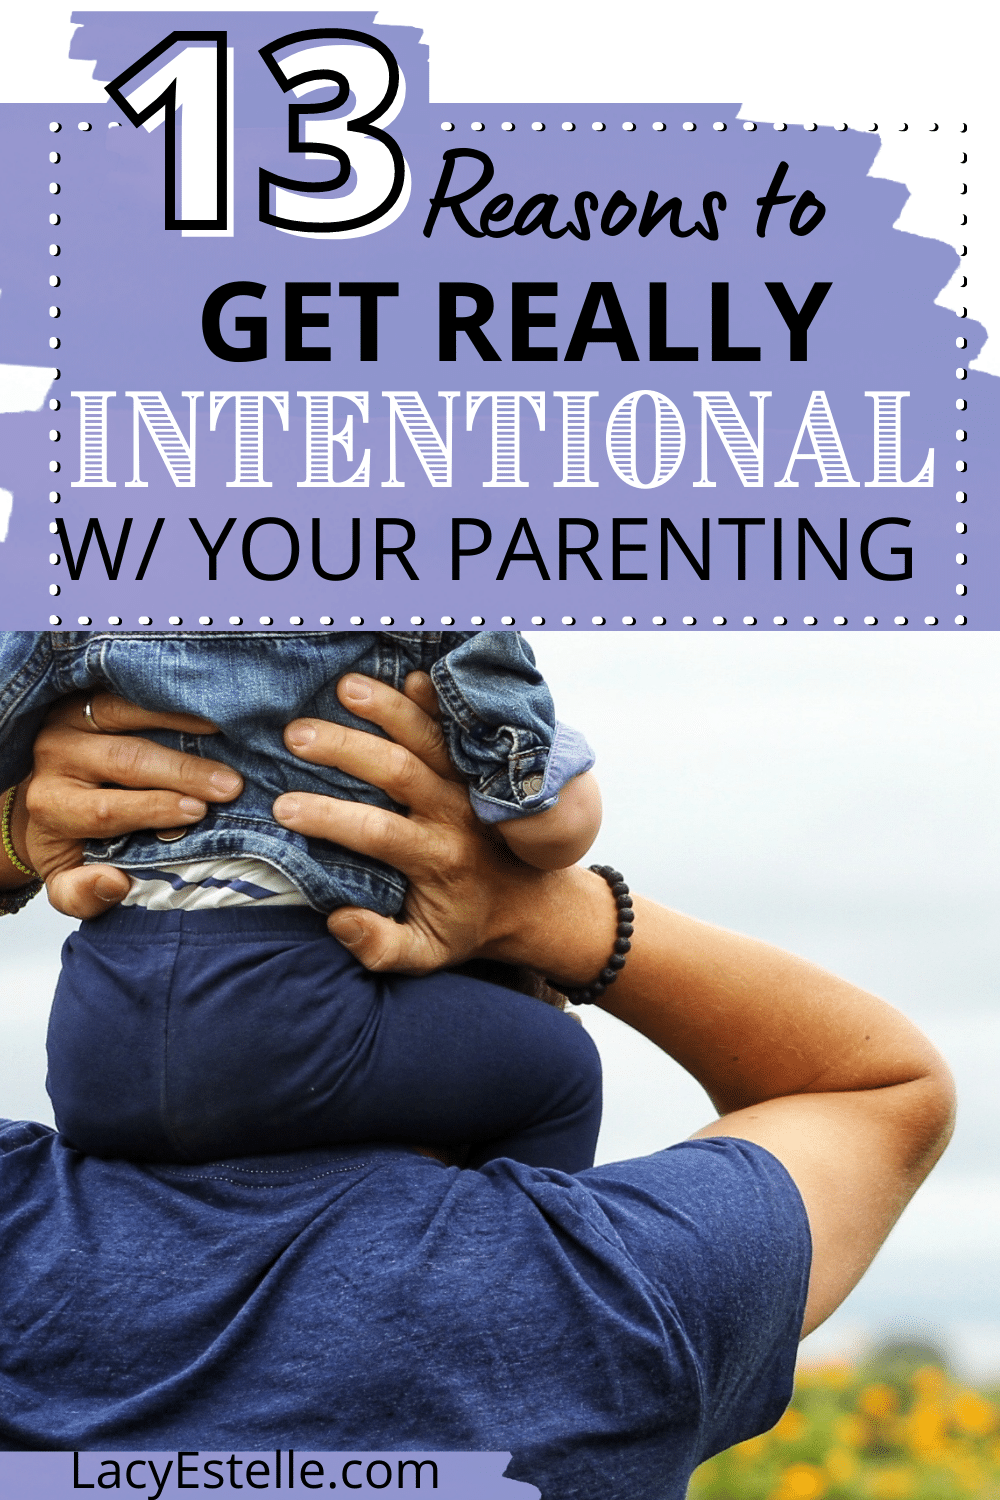 Why you need to be more intentional as a parent, 13 reasons for parenting more intentionally.